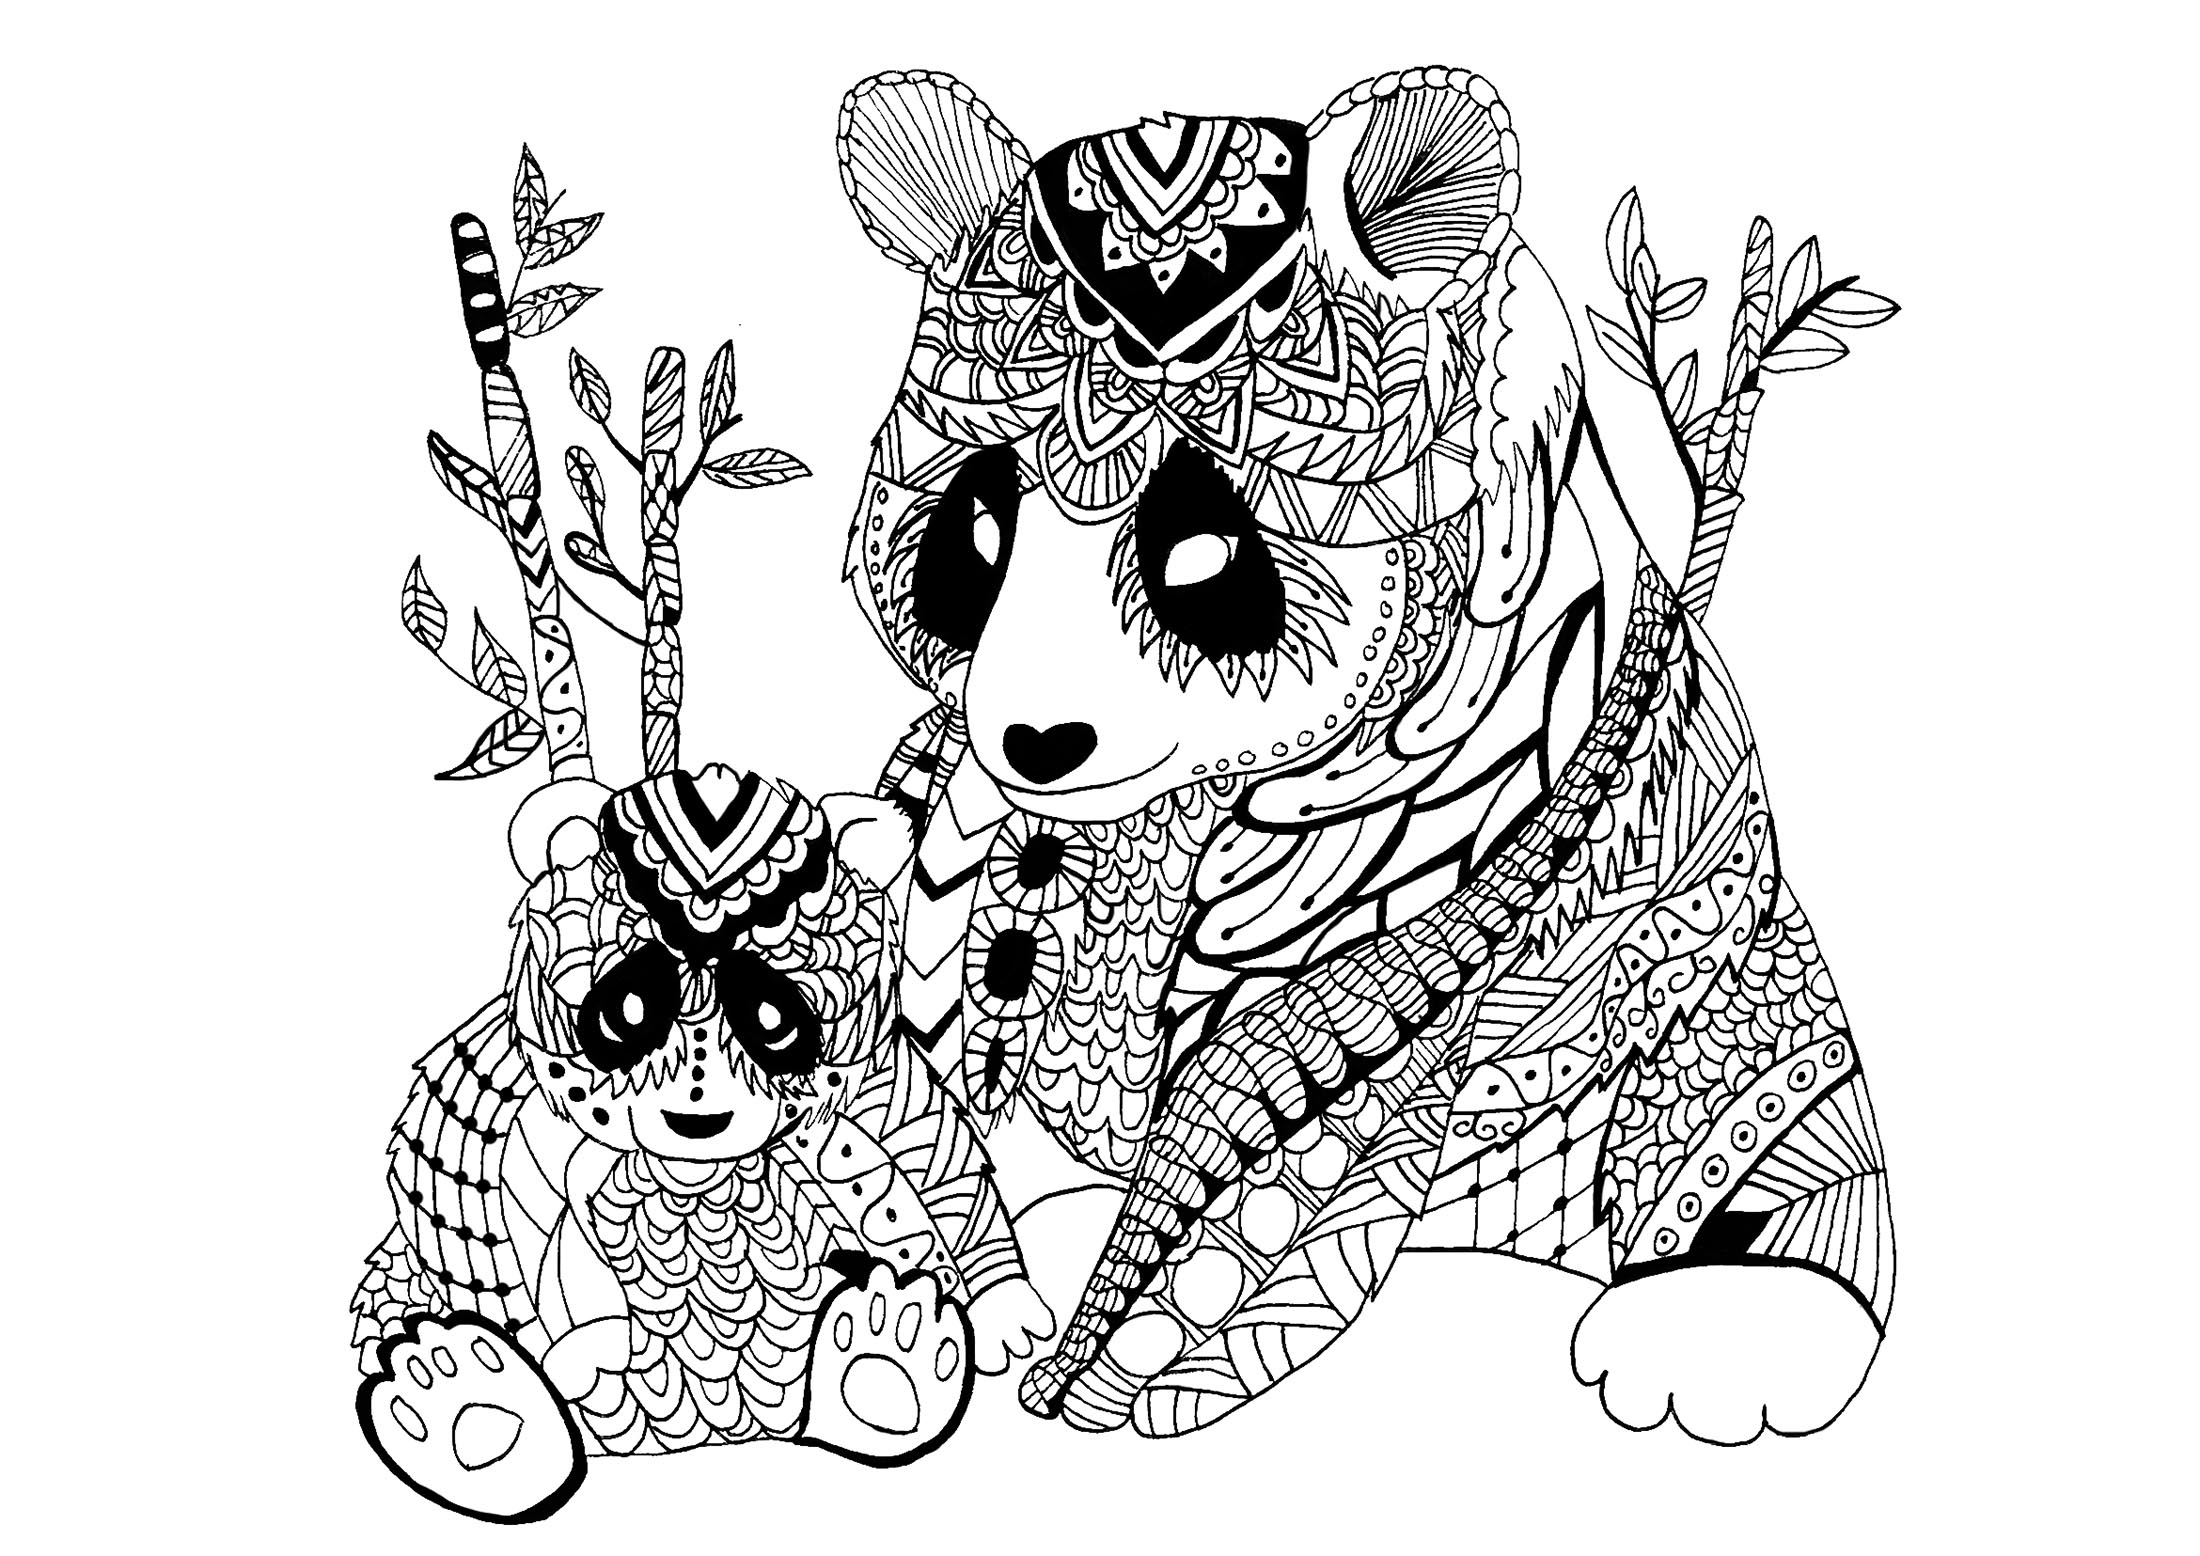 Beautiful Pandas coloring page to print and color